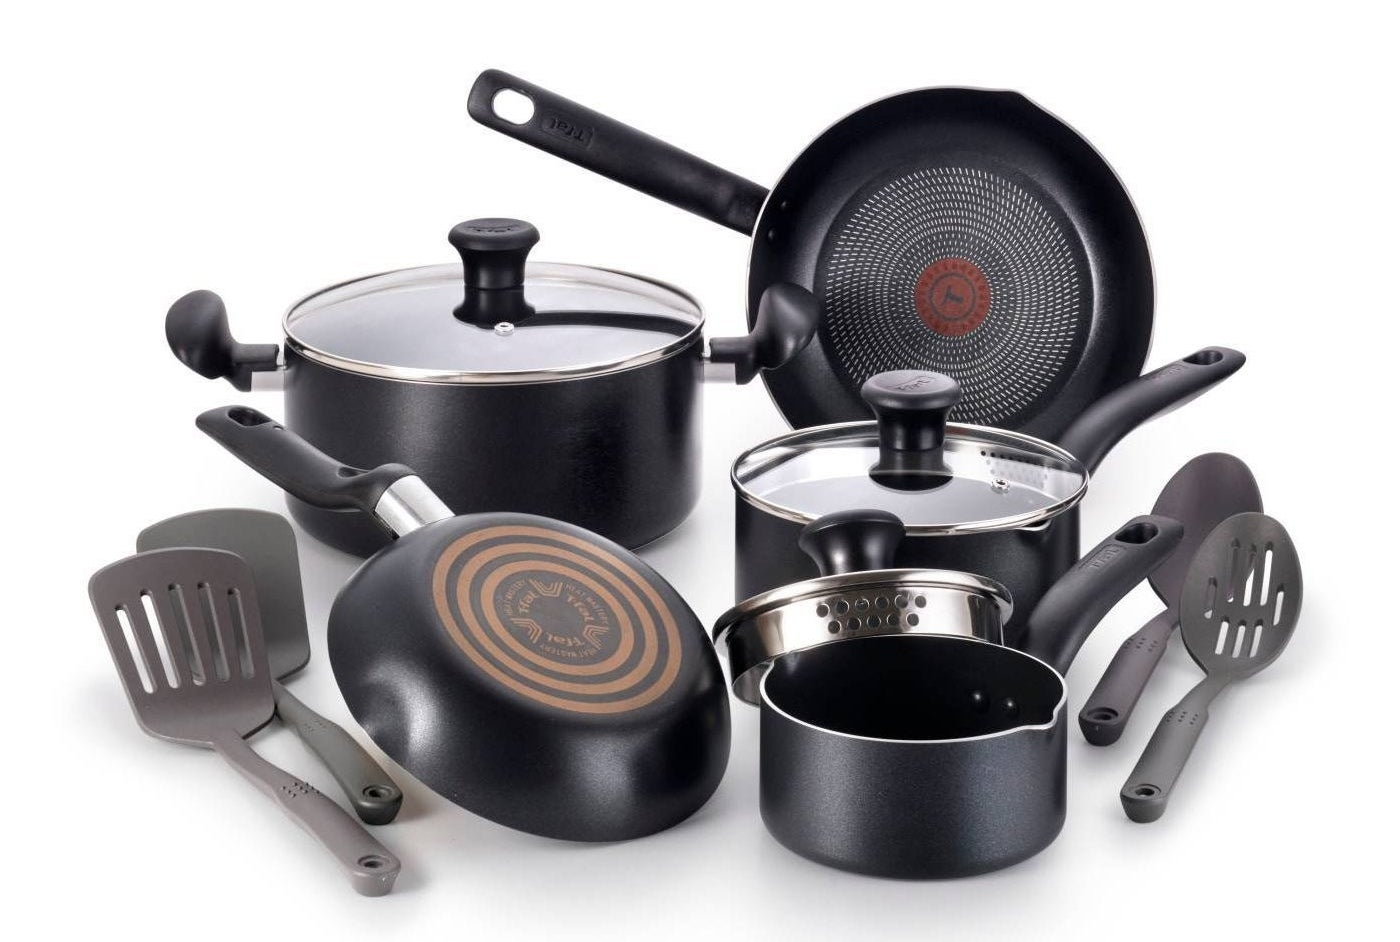 The nonstick cookware